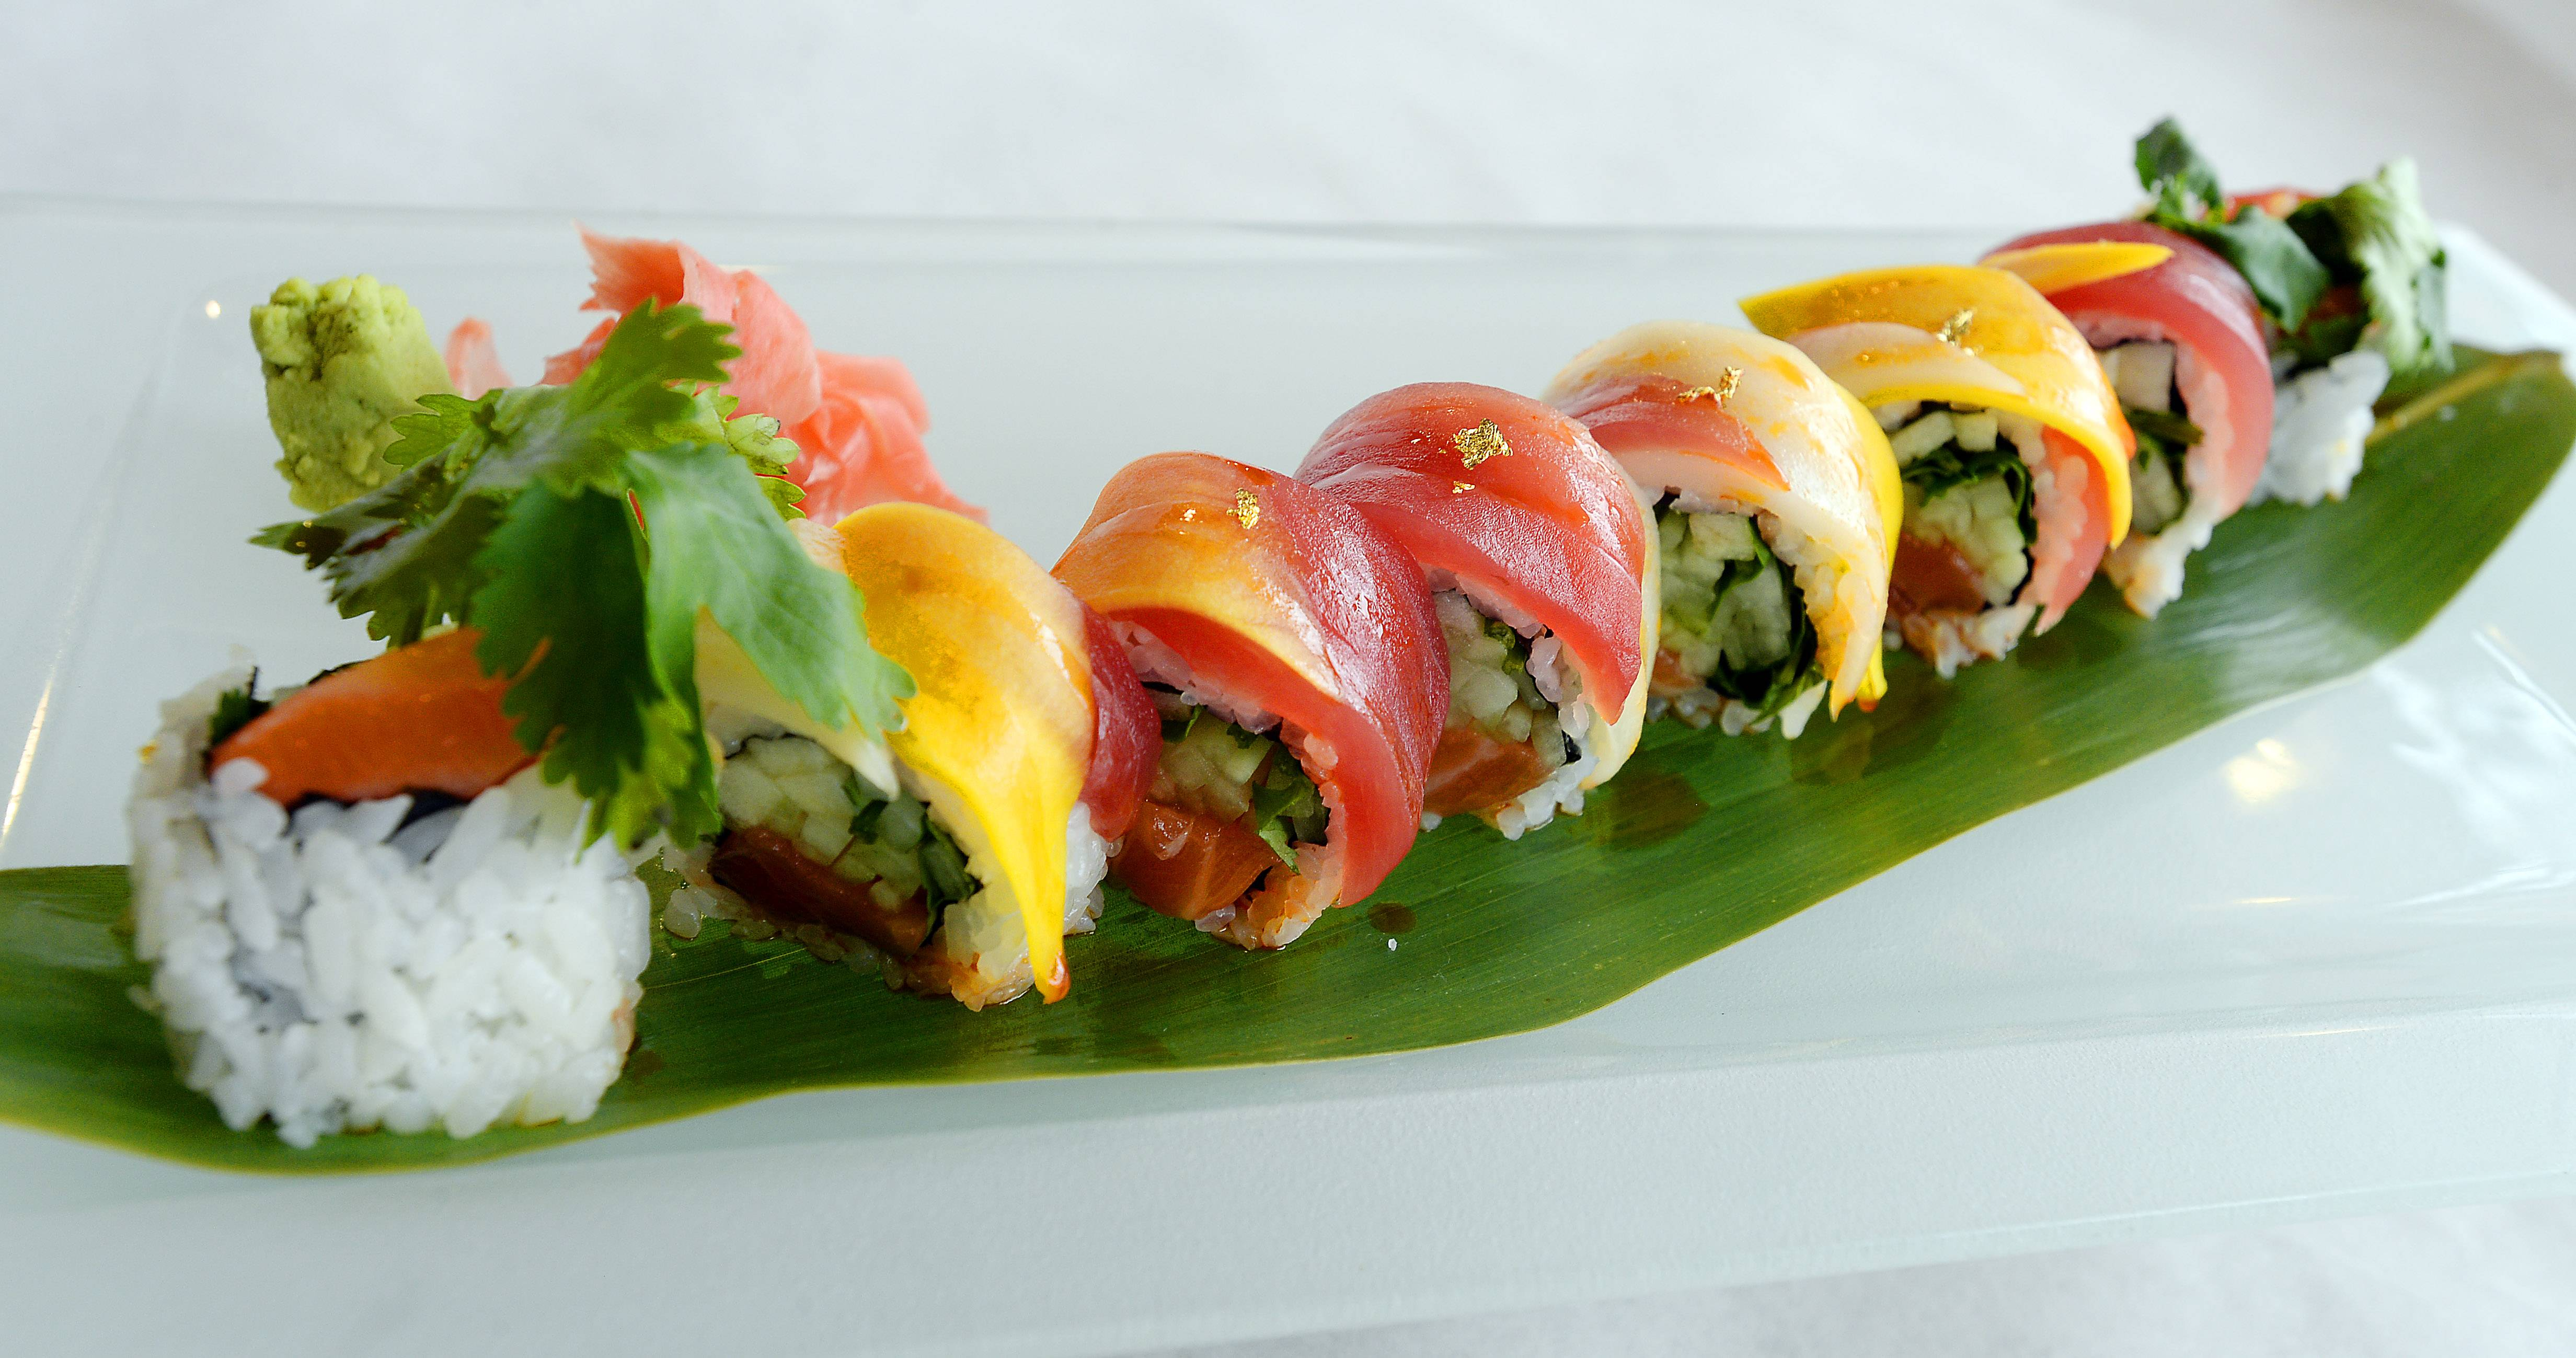 The Golden Dragon Roll is one of the sushi options at Bistro Chen.